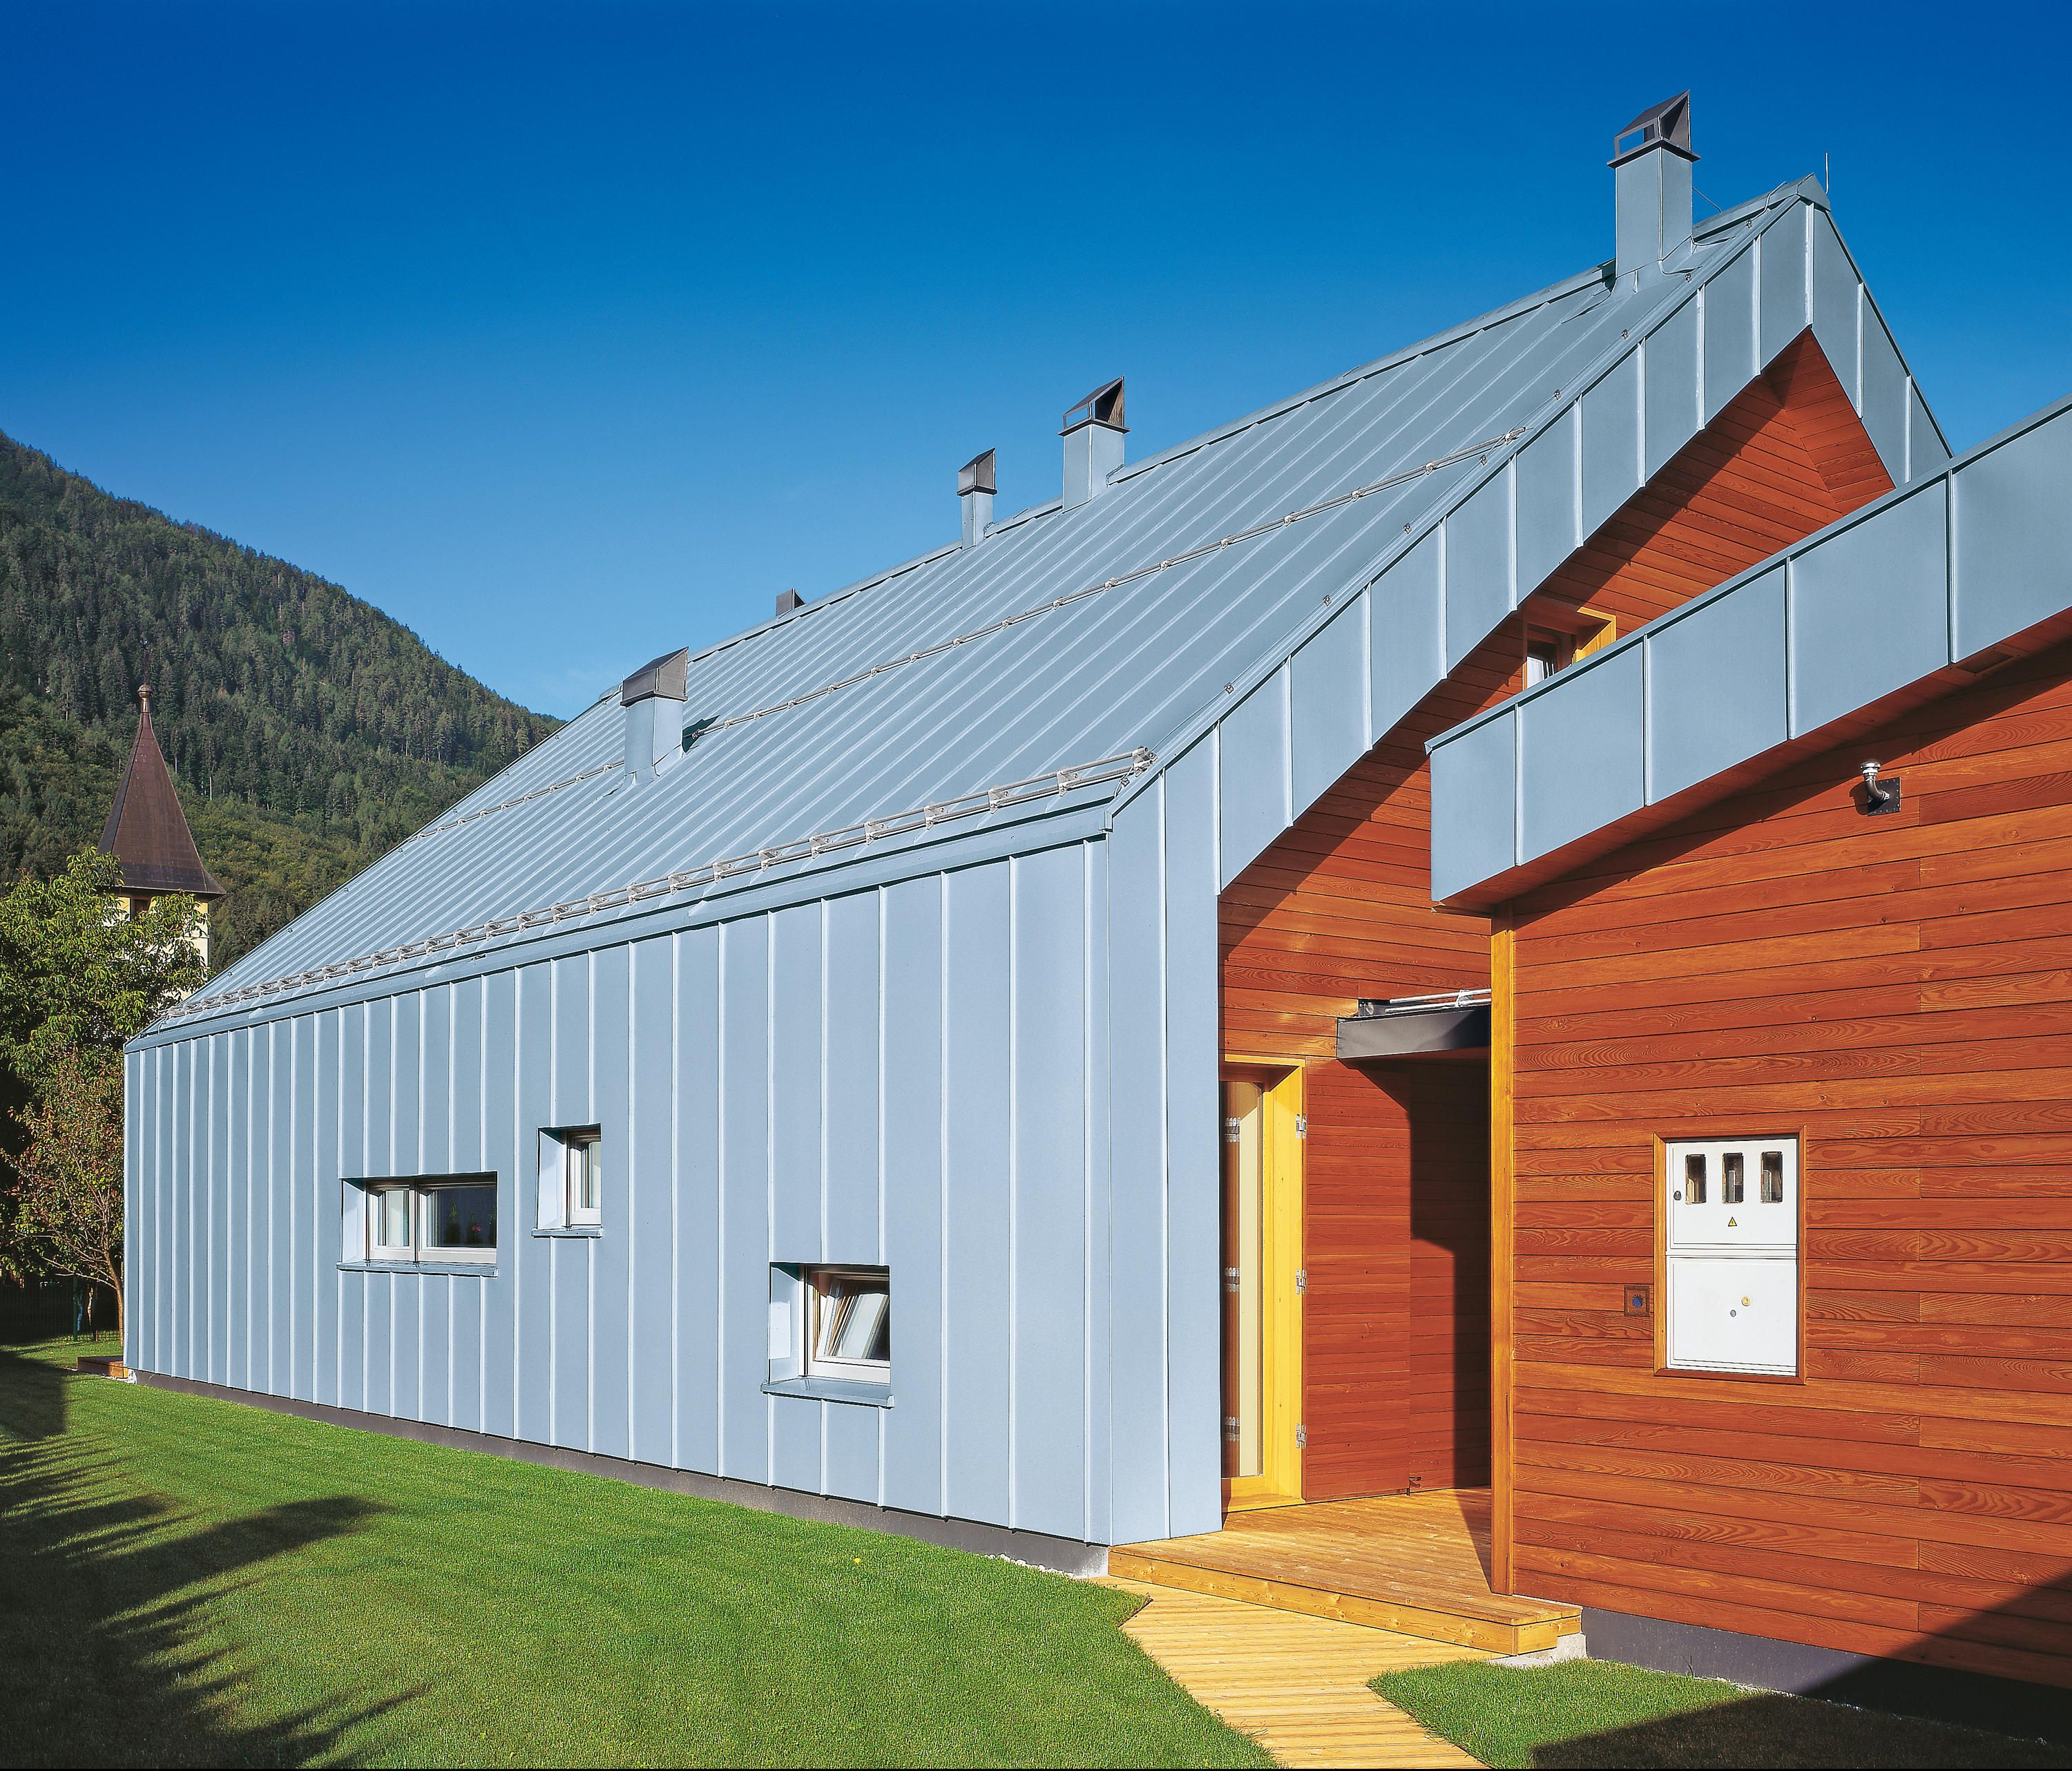 Seam Systems Angled Standing Seam Designer Facade Constructions From Rheinzink All Information High Resolution I Standing Seam Zinc Roof House Cladding